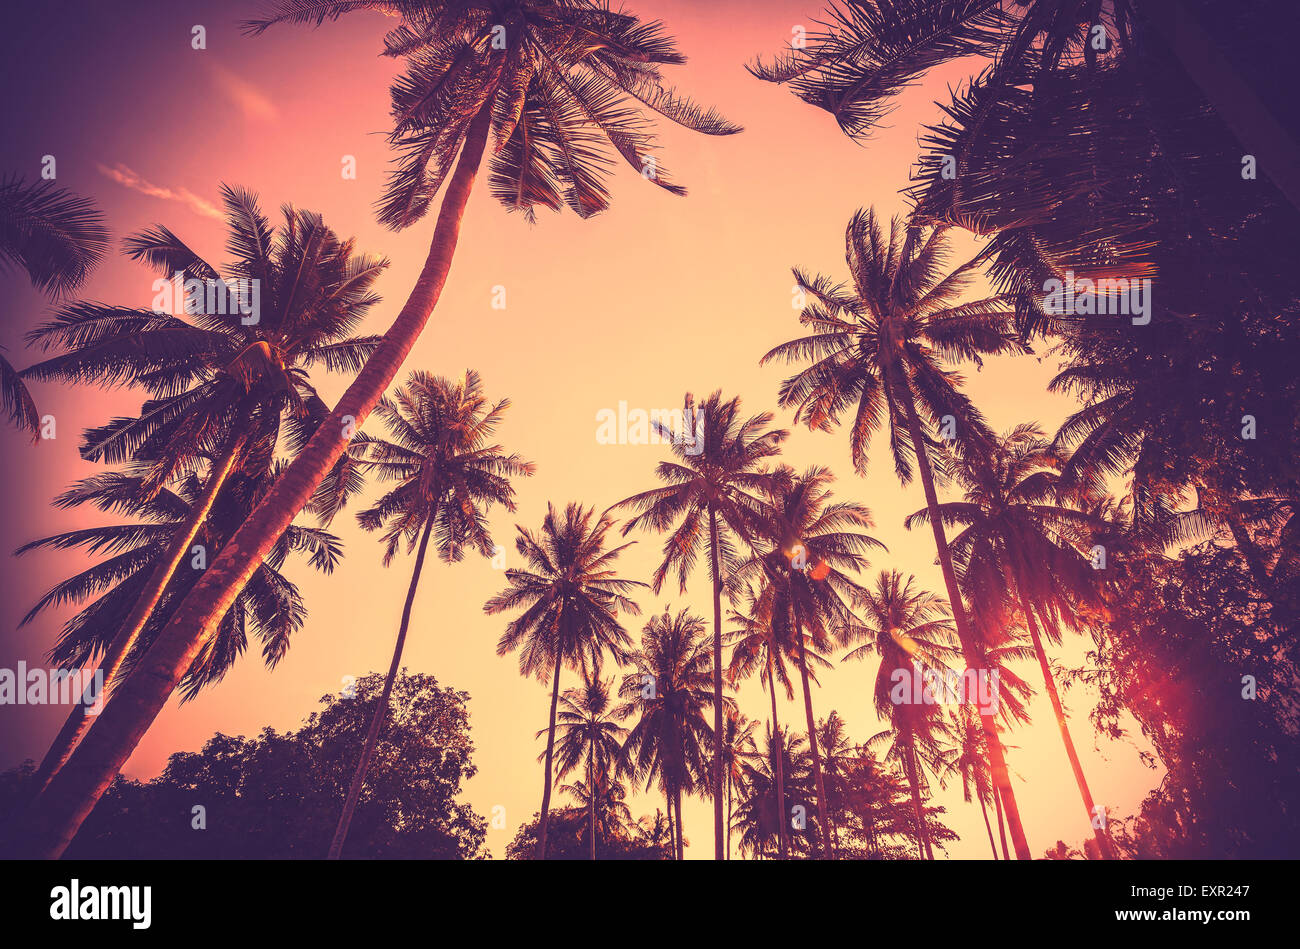 Vintage toned holiday background made of palm tree silhouettes at sunset. - Stock Image